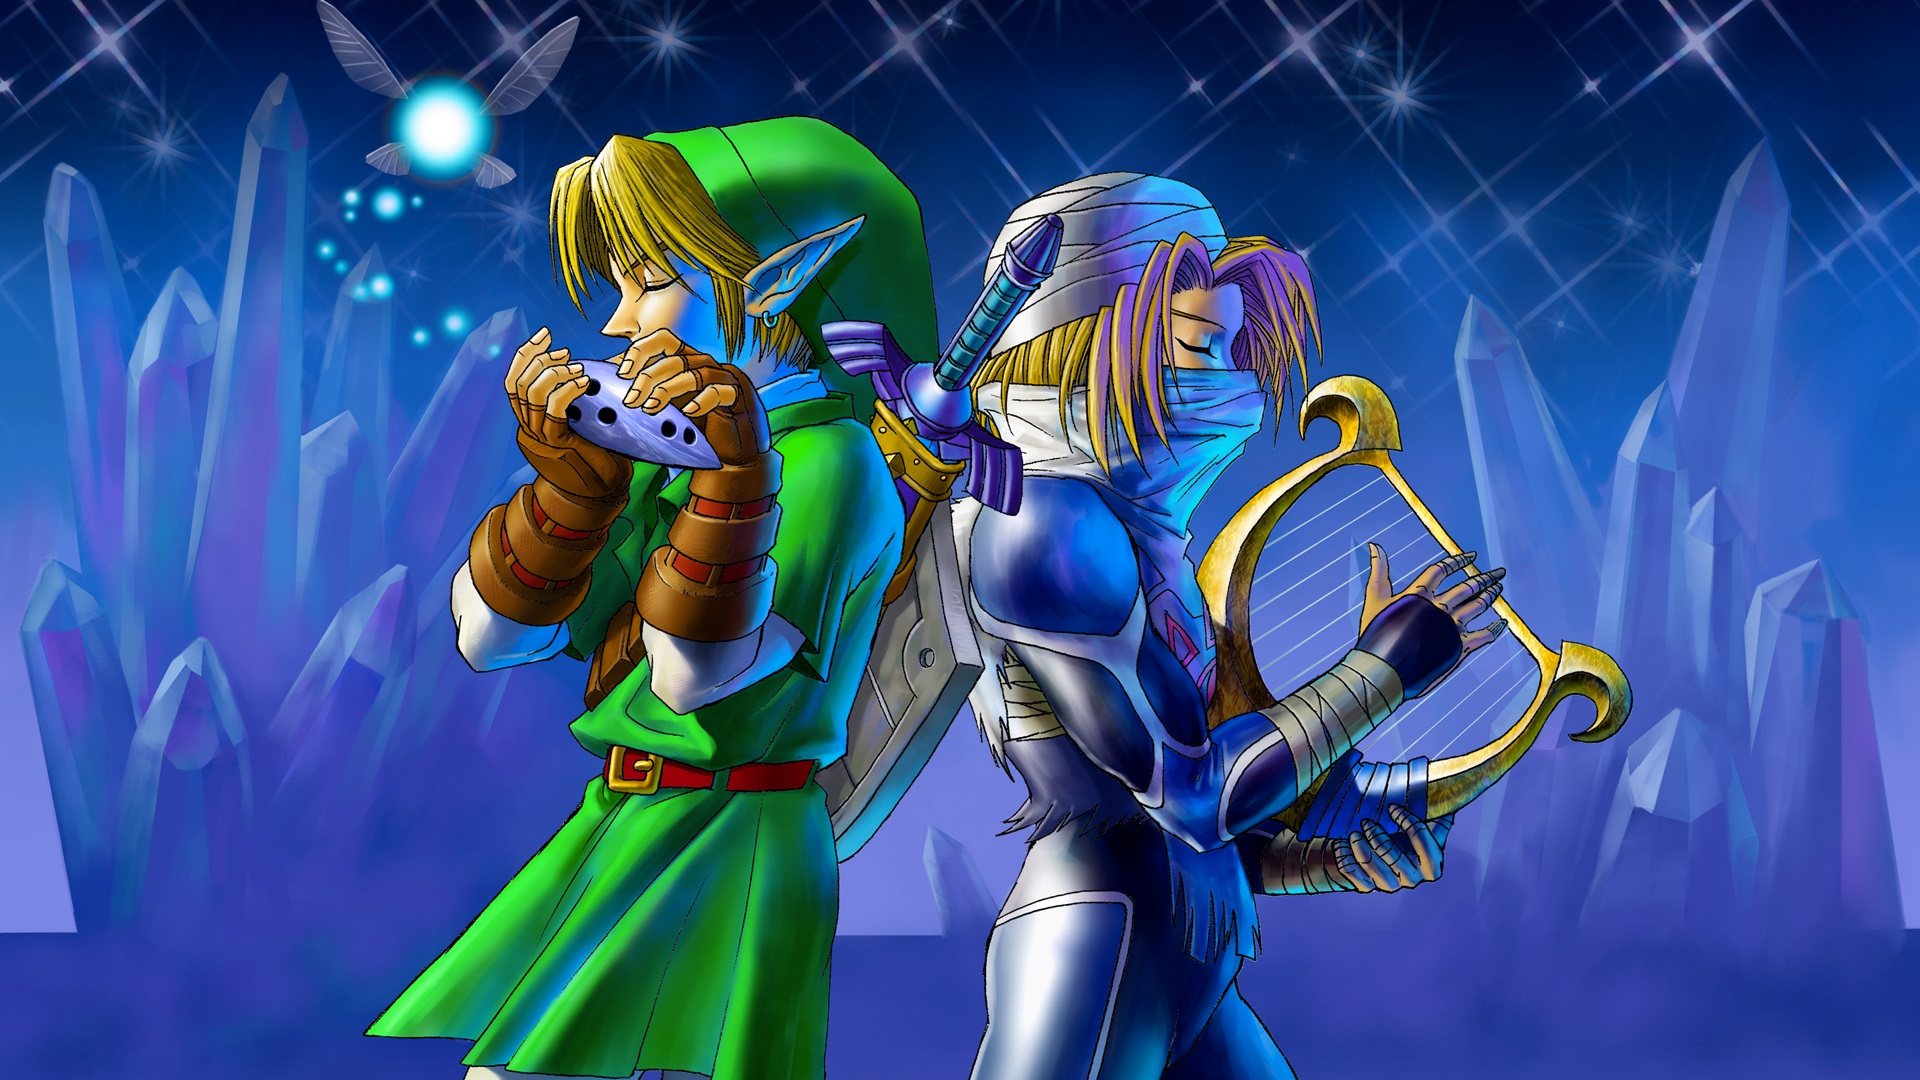 Wii U Screen Savers : The legend of zelda ocarina time hd wallpaper